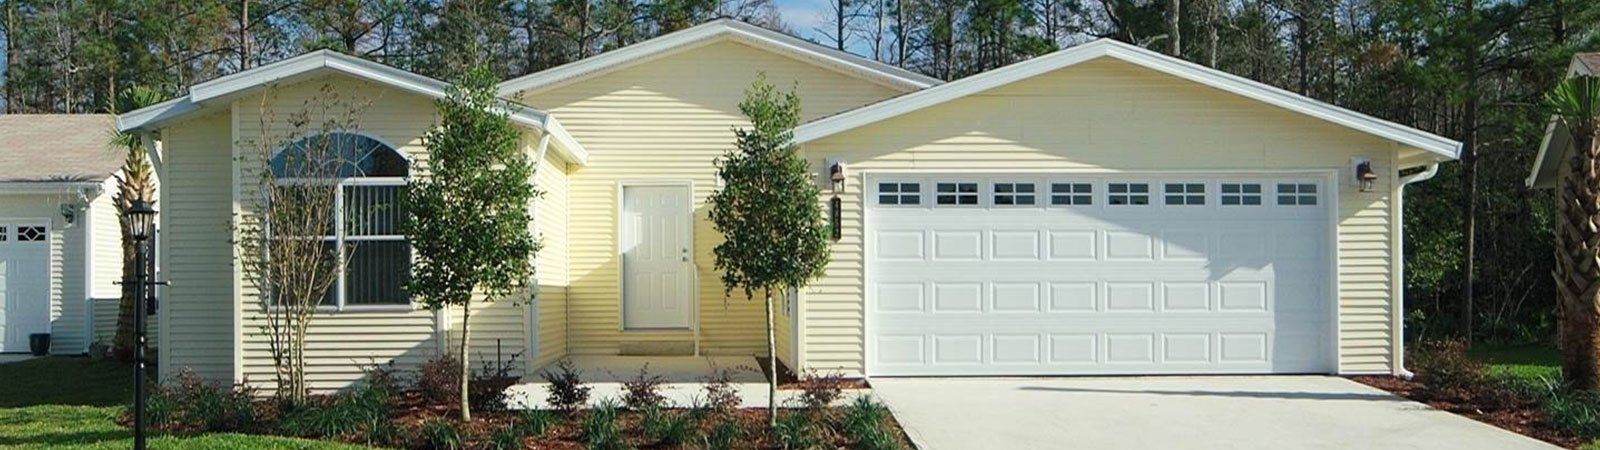 Apply For A Manufactured Home Loan